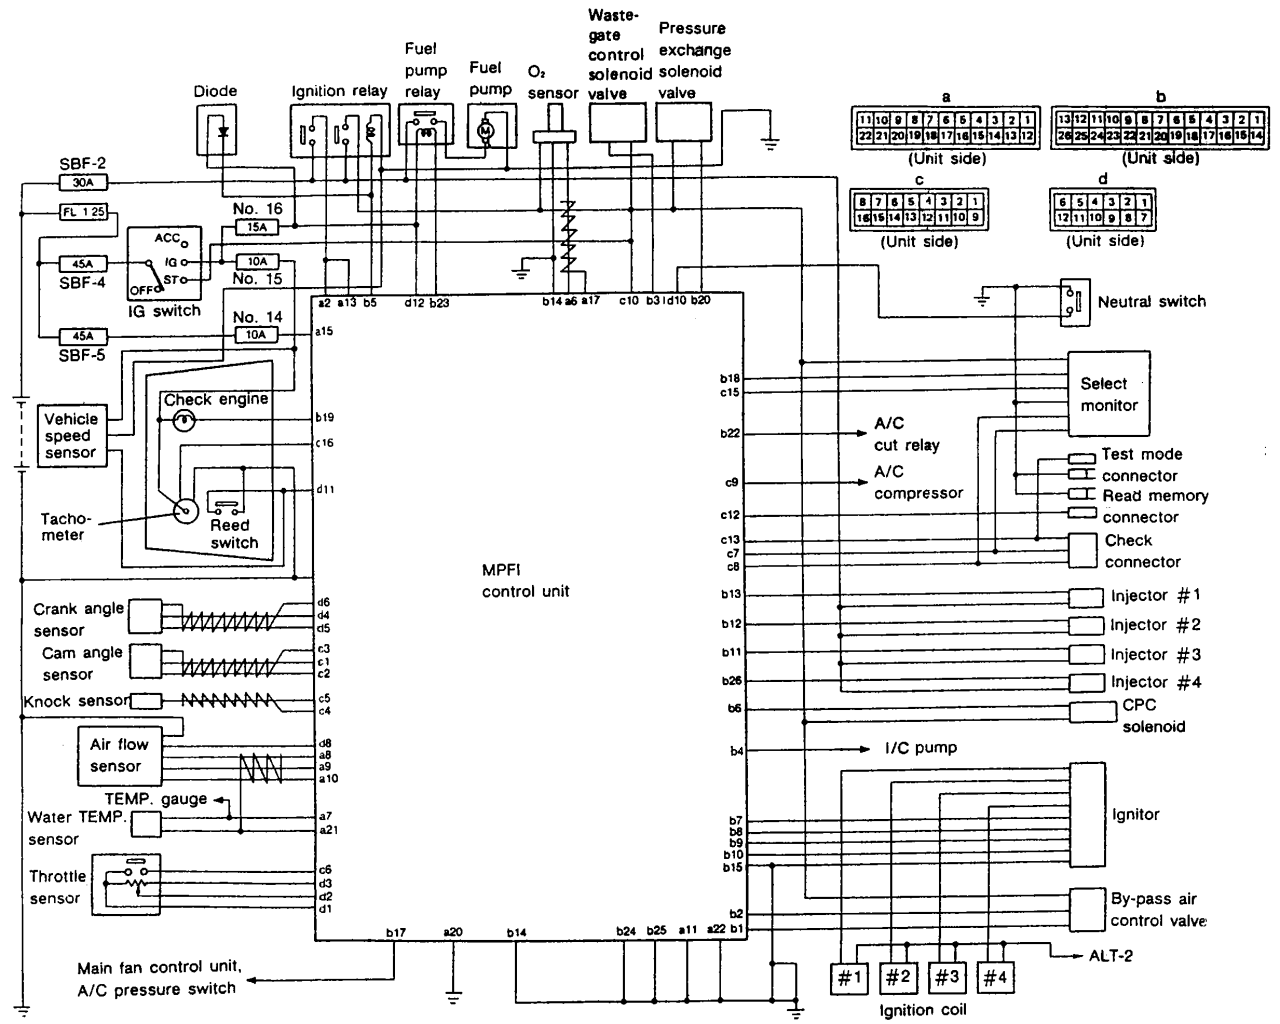 92_liberty_rs_ecu 93 subaru legacy wiring diagram 1995 subaru legacy wiring diagram 1996 Subaru Impreza at bayanpartner.co